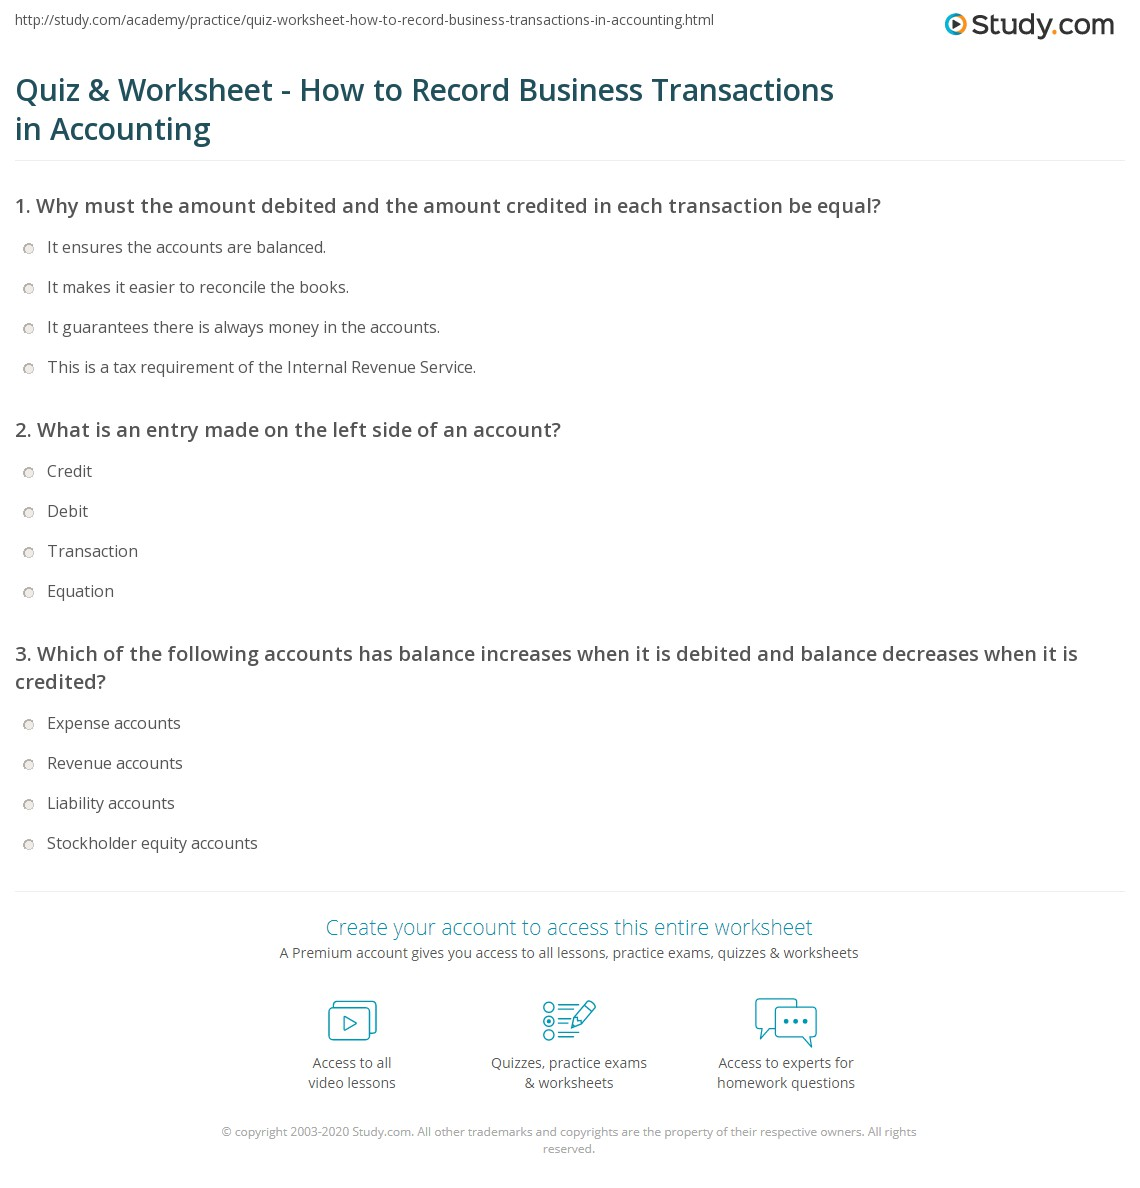 quiz worksheet how to record business transactions in accounting